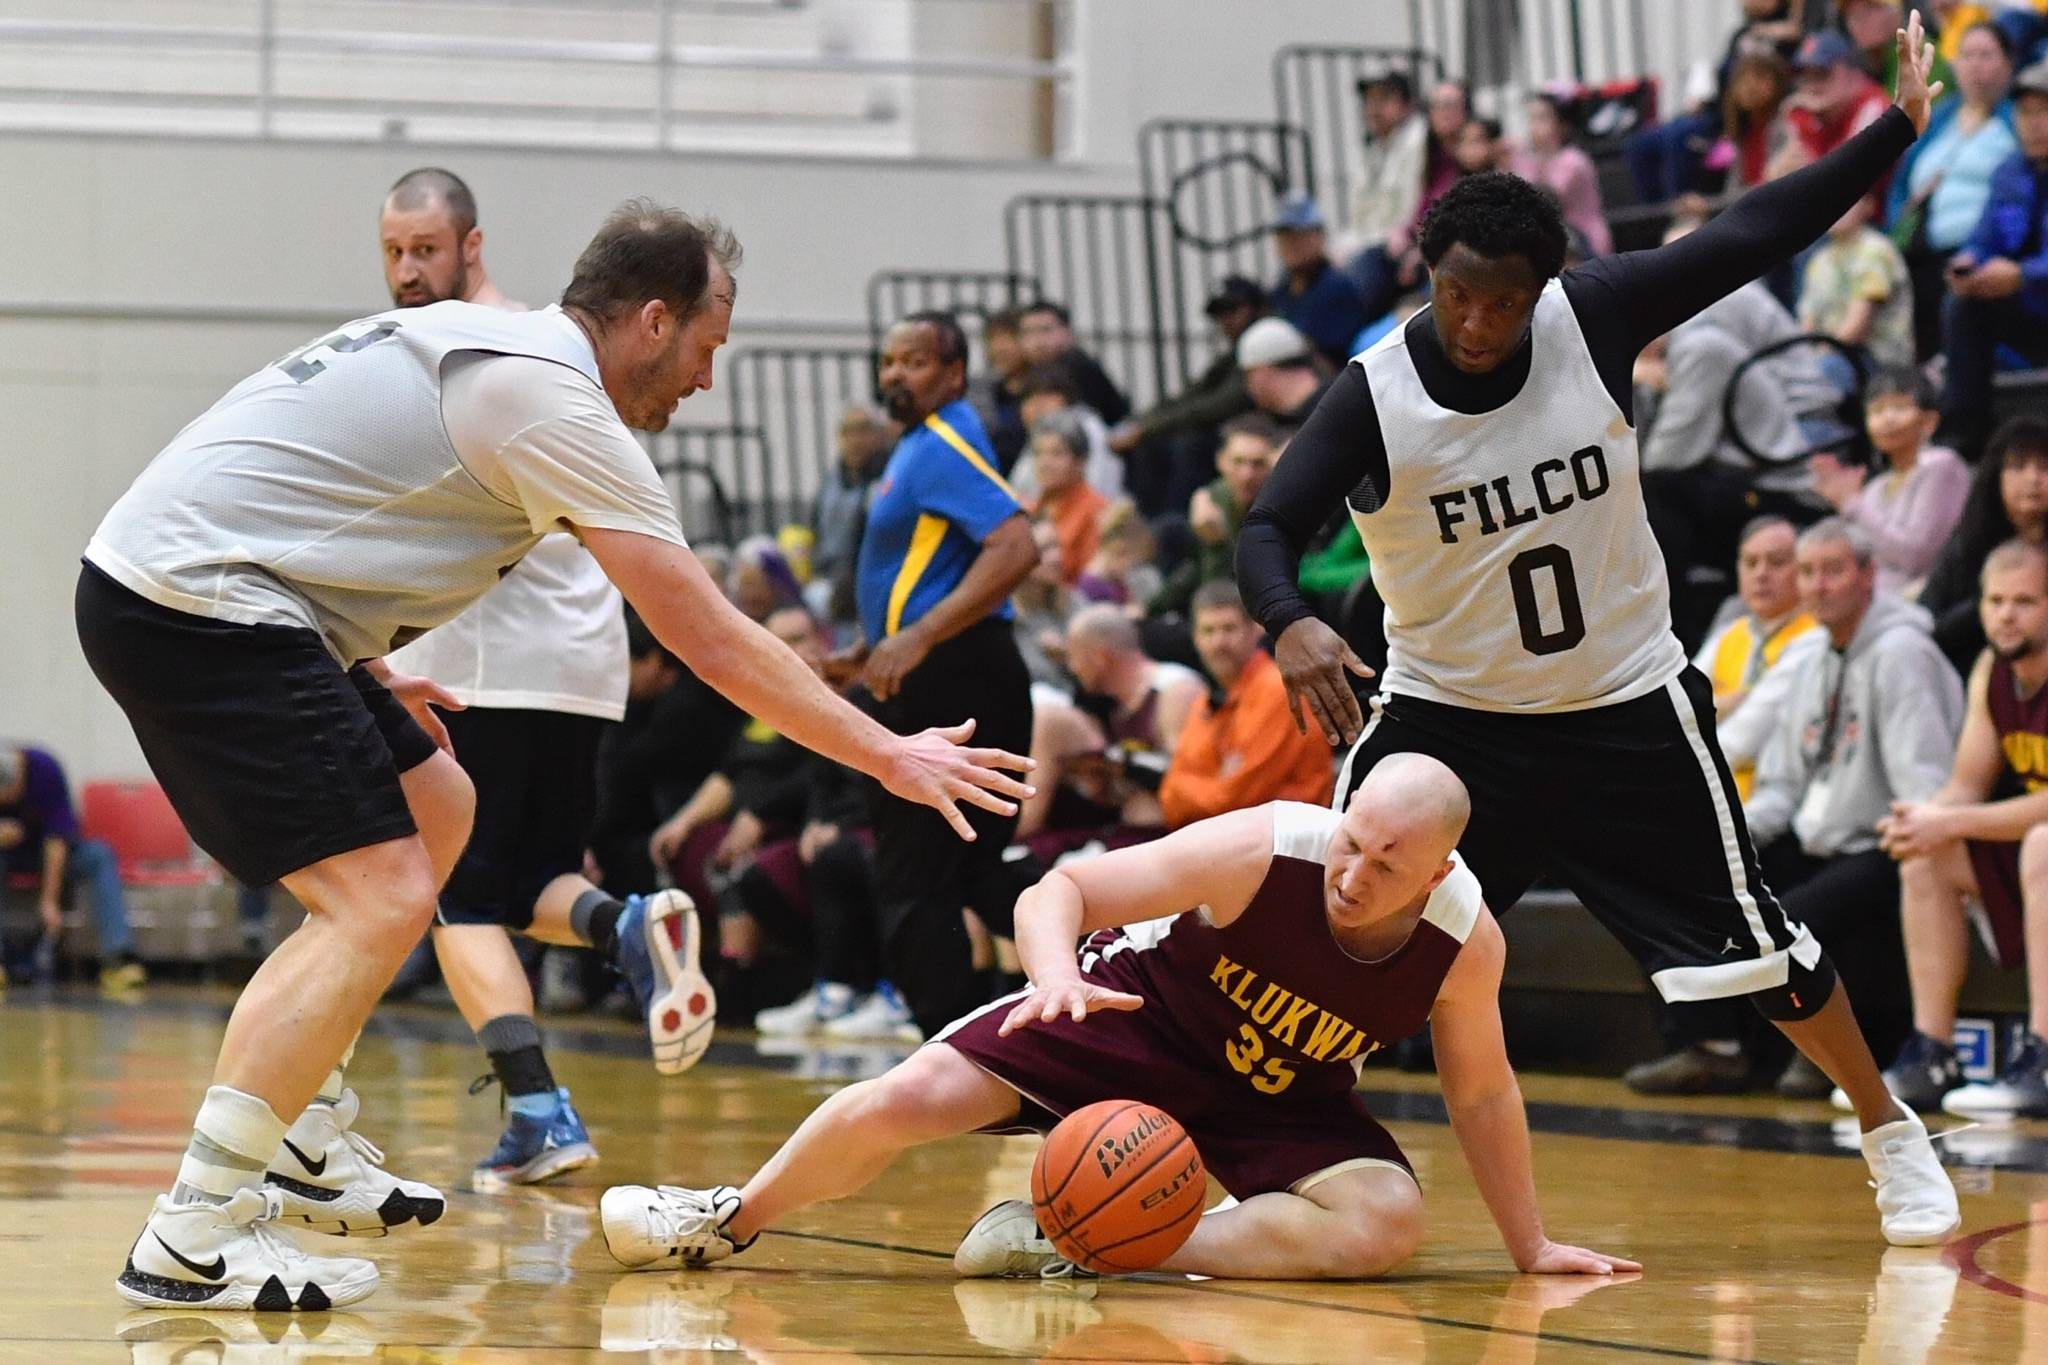 Klukwan's Brian Friske, center, goes for a loose ball against Filcom's Greg Lockwood, left, and Rob Ridgeway in their C bracket game at the Lions Club's Gold Medal Basketball Tournament on Thursday, March 21, 2019. (Michael Penn | Juneau Empire)